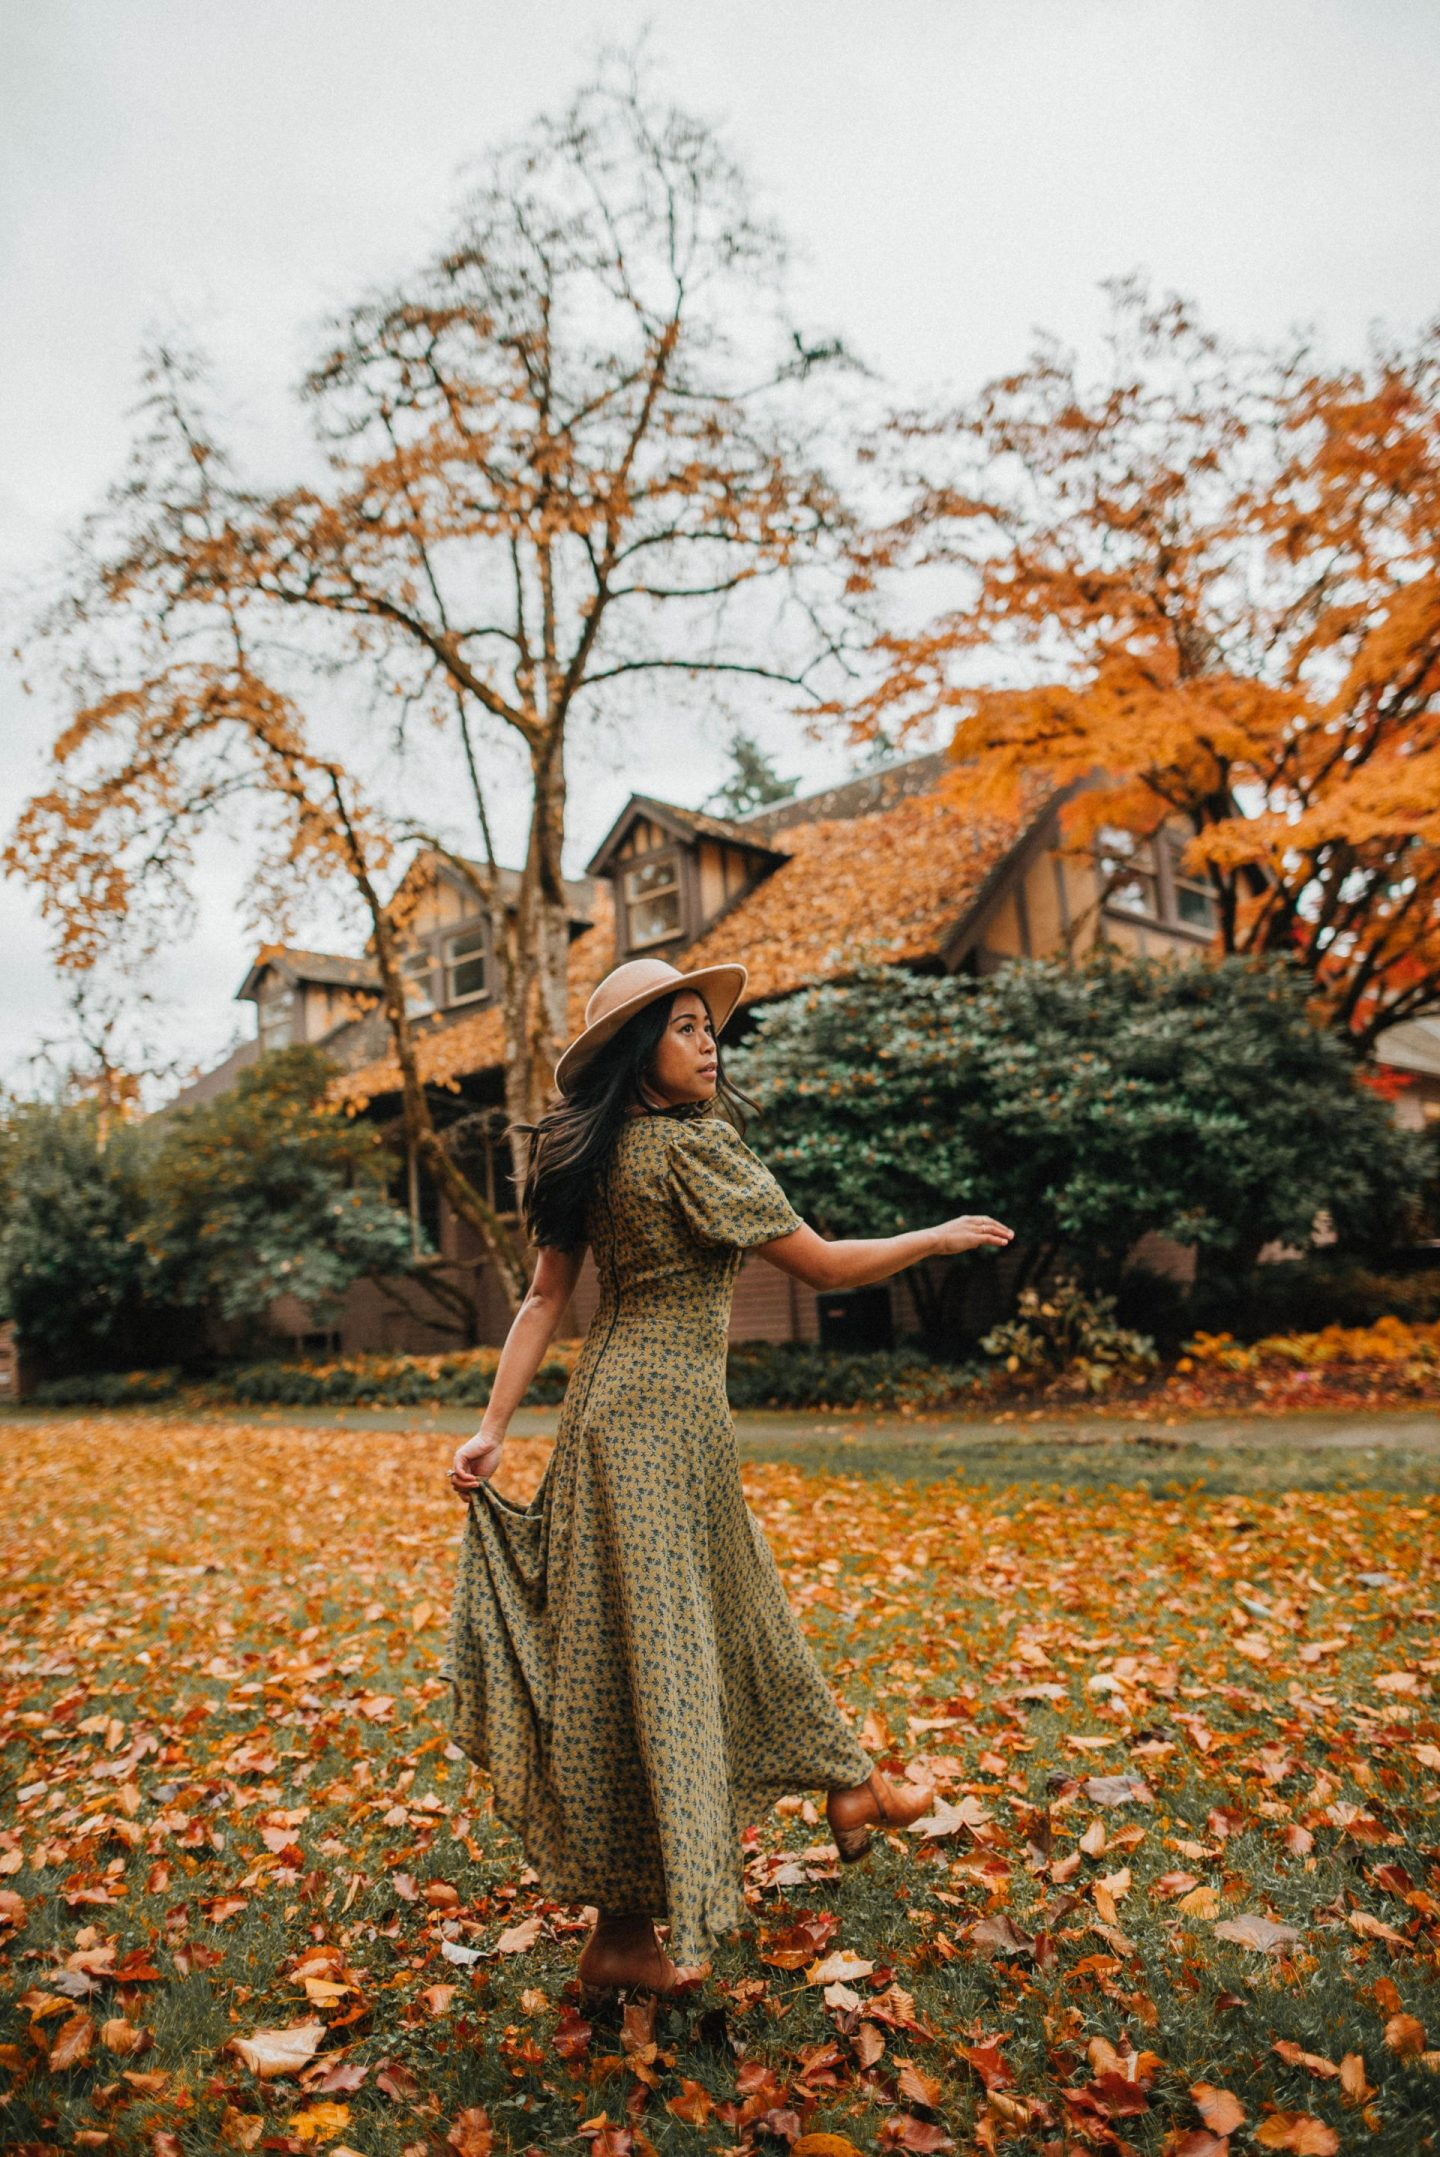 Engagement photo shoot locations around Seattle - Fall Season - image from www.emmasedition.com